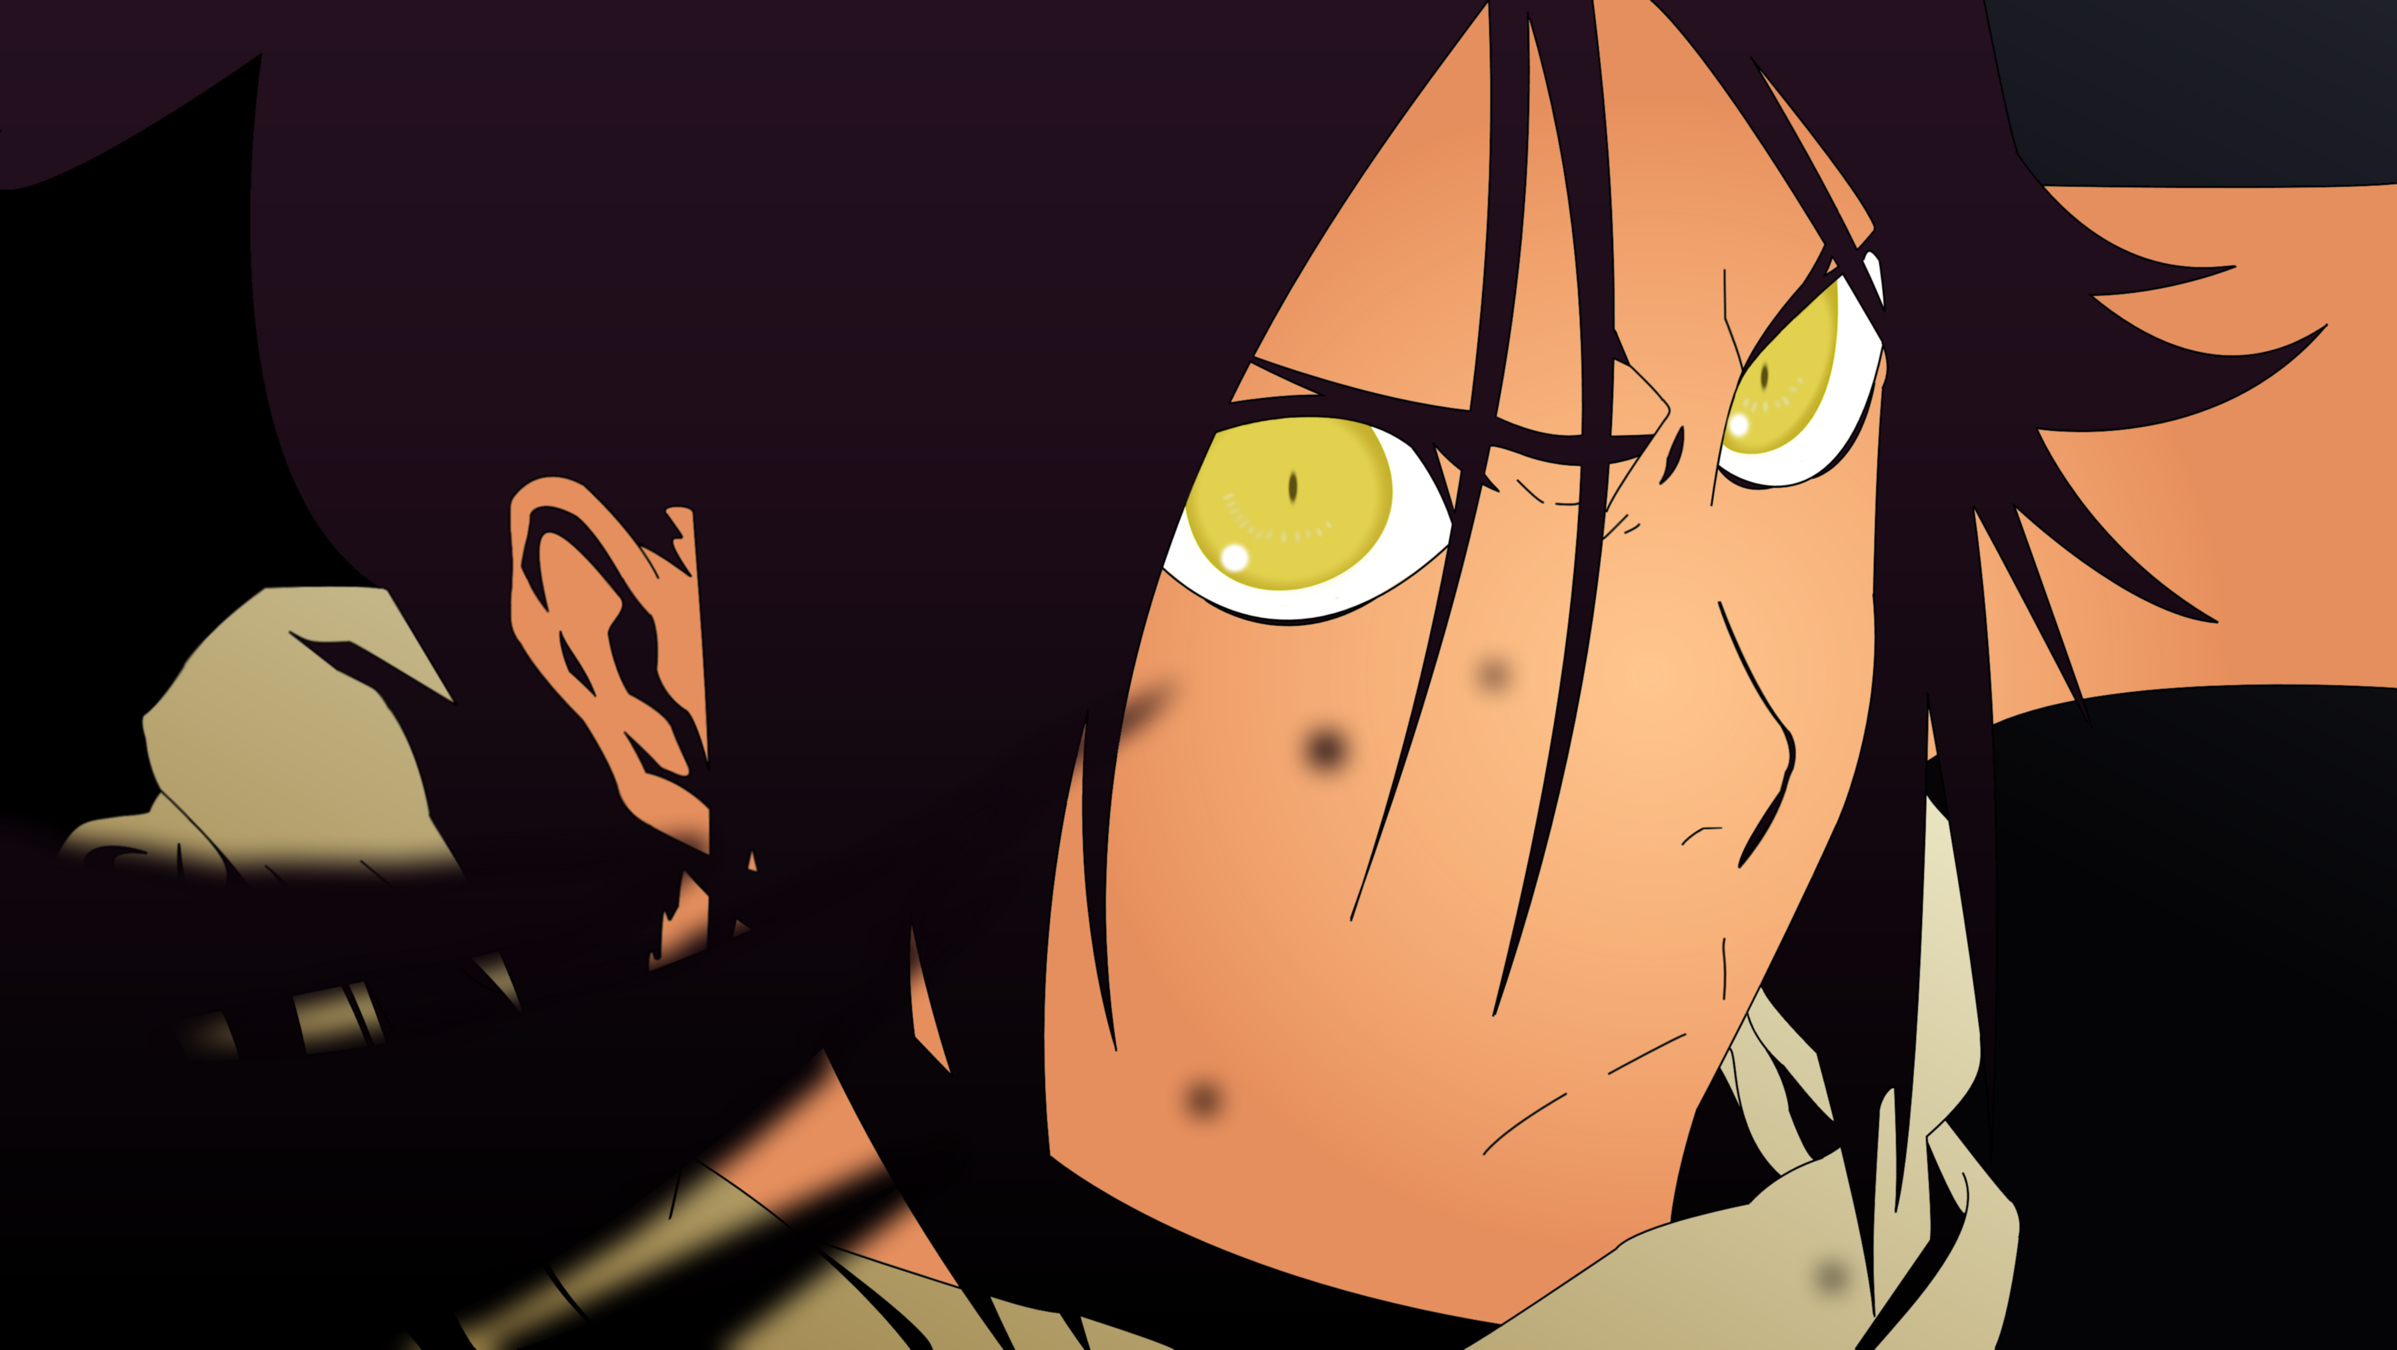 bleach shihouin yoruichi Anime HD Wallpaper